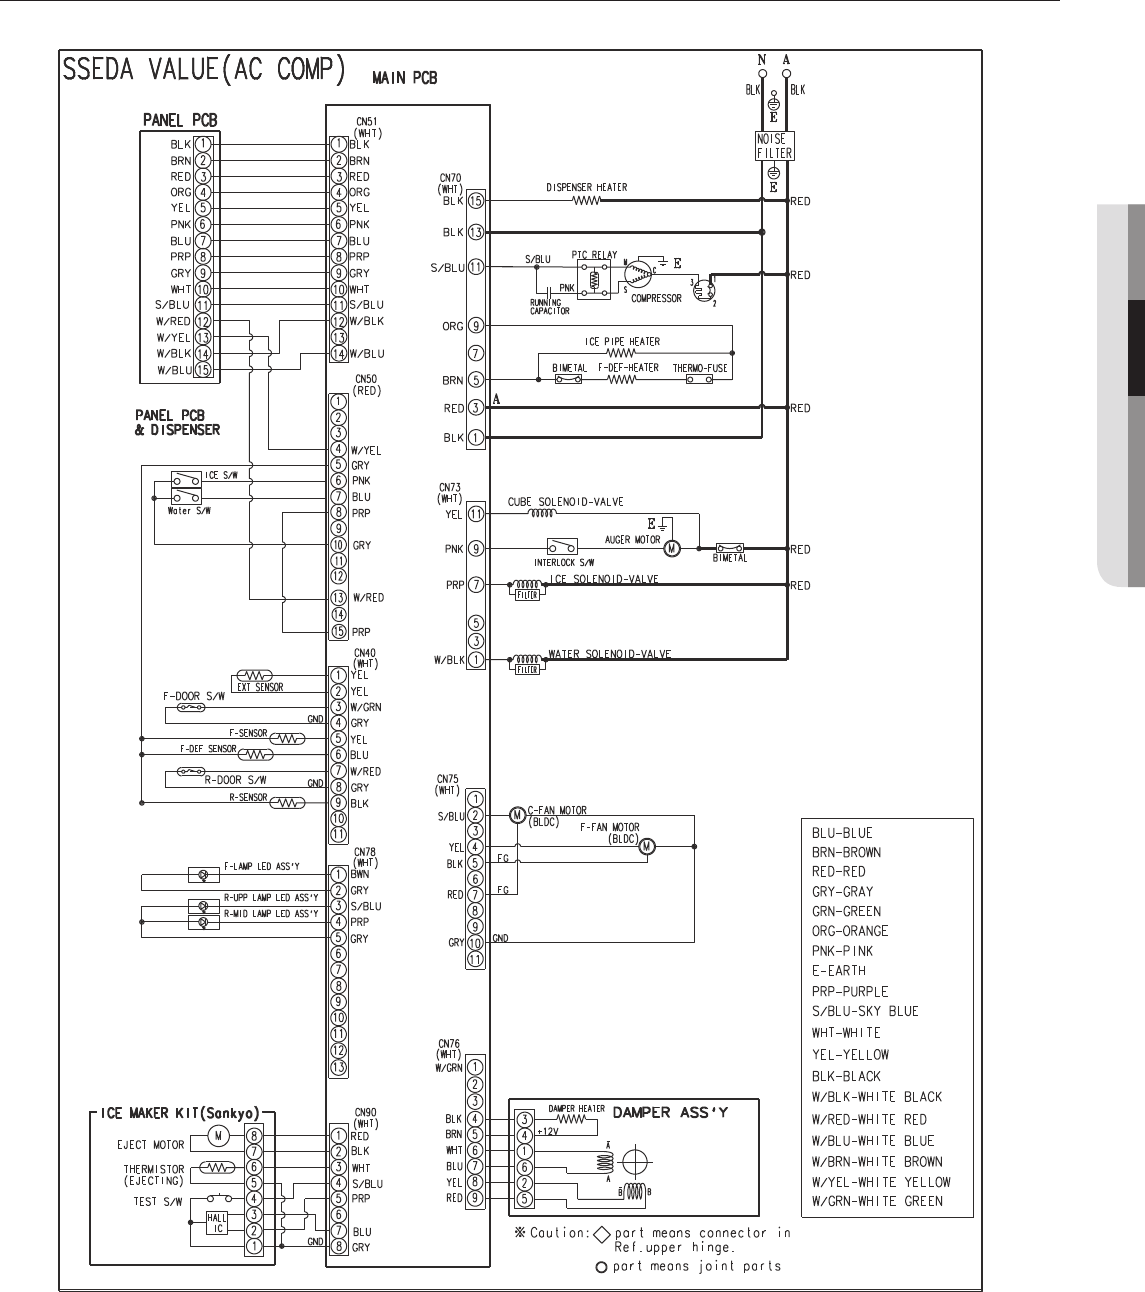 21aa6212 5c03 4539 ac02 99a0885d5c5e bg1f page 31 of samsung refrigerator rs261mdwp user guide wiring diagram for a refrigerator compressor at creativeand.co